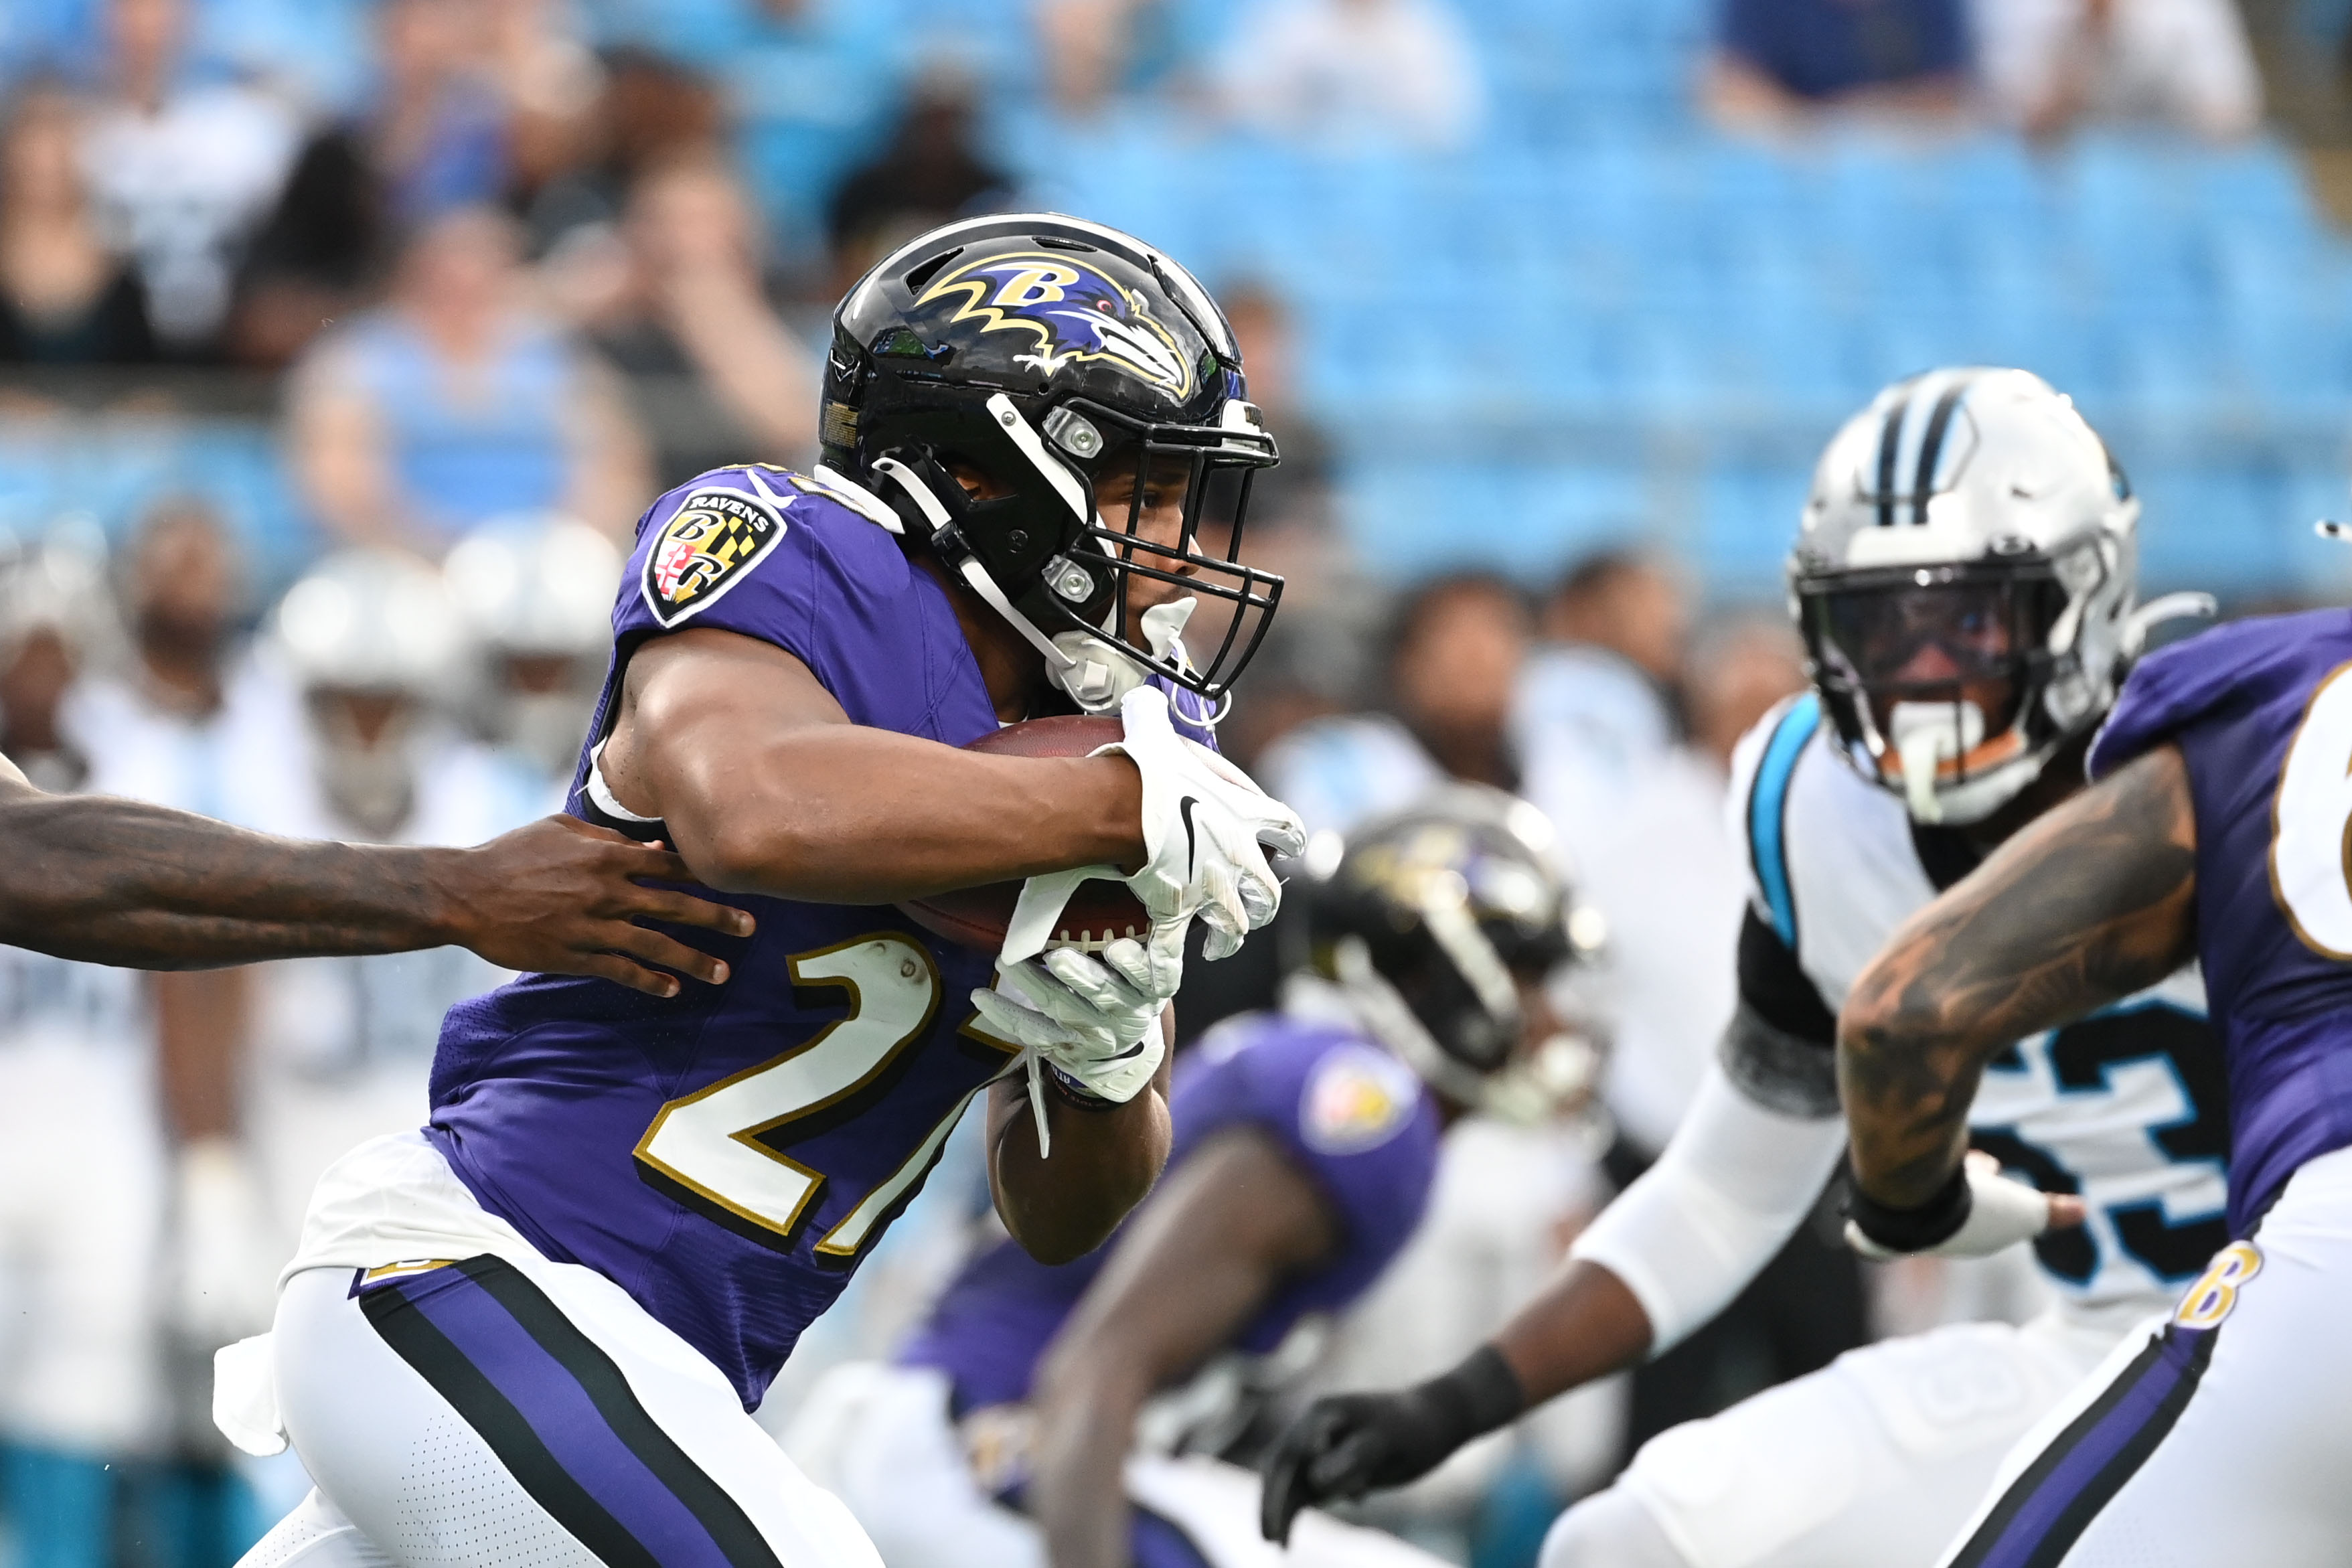 Baltimore Ravens running back J.K. Dobbins (27) with the ball in the first quarter at Bank of America Stadium.